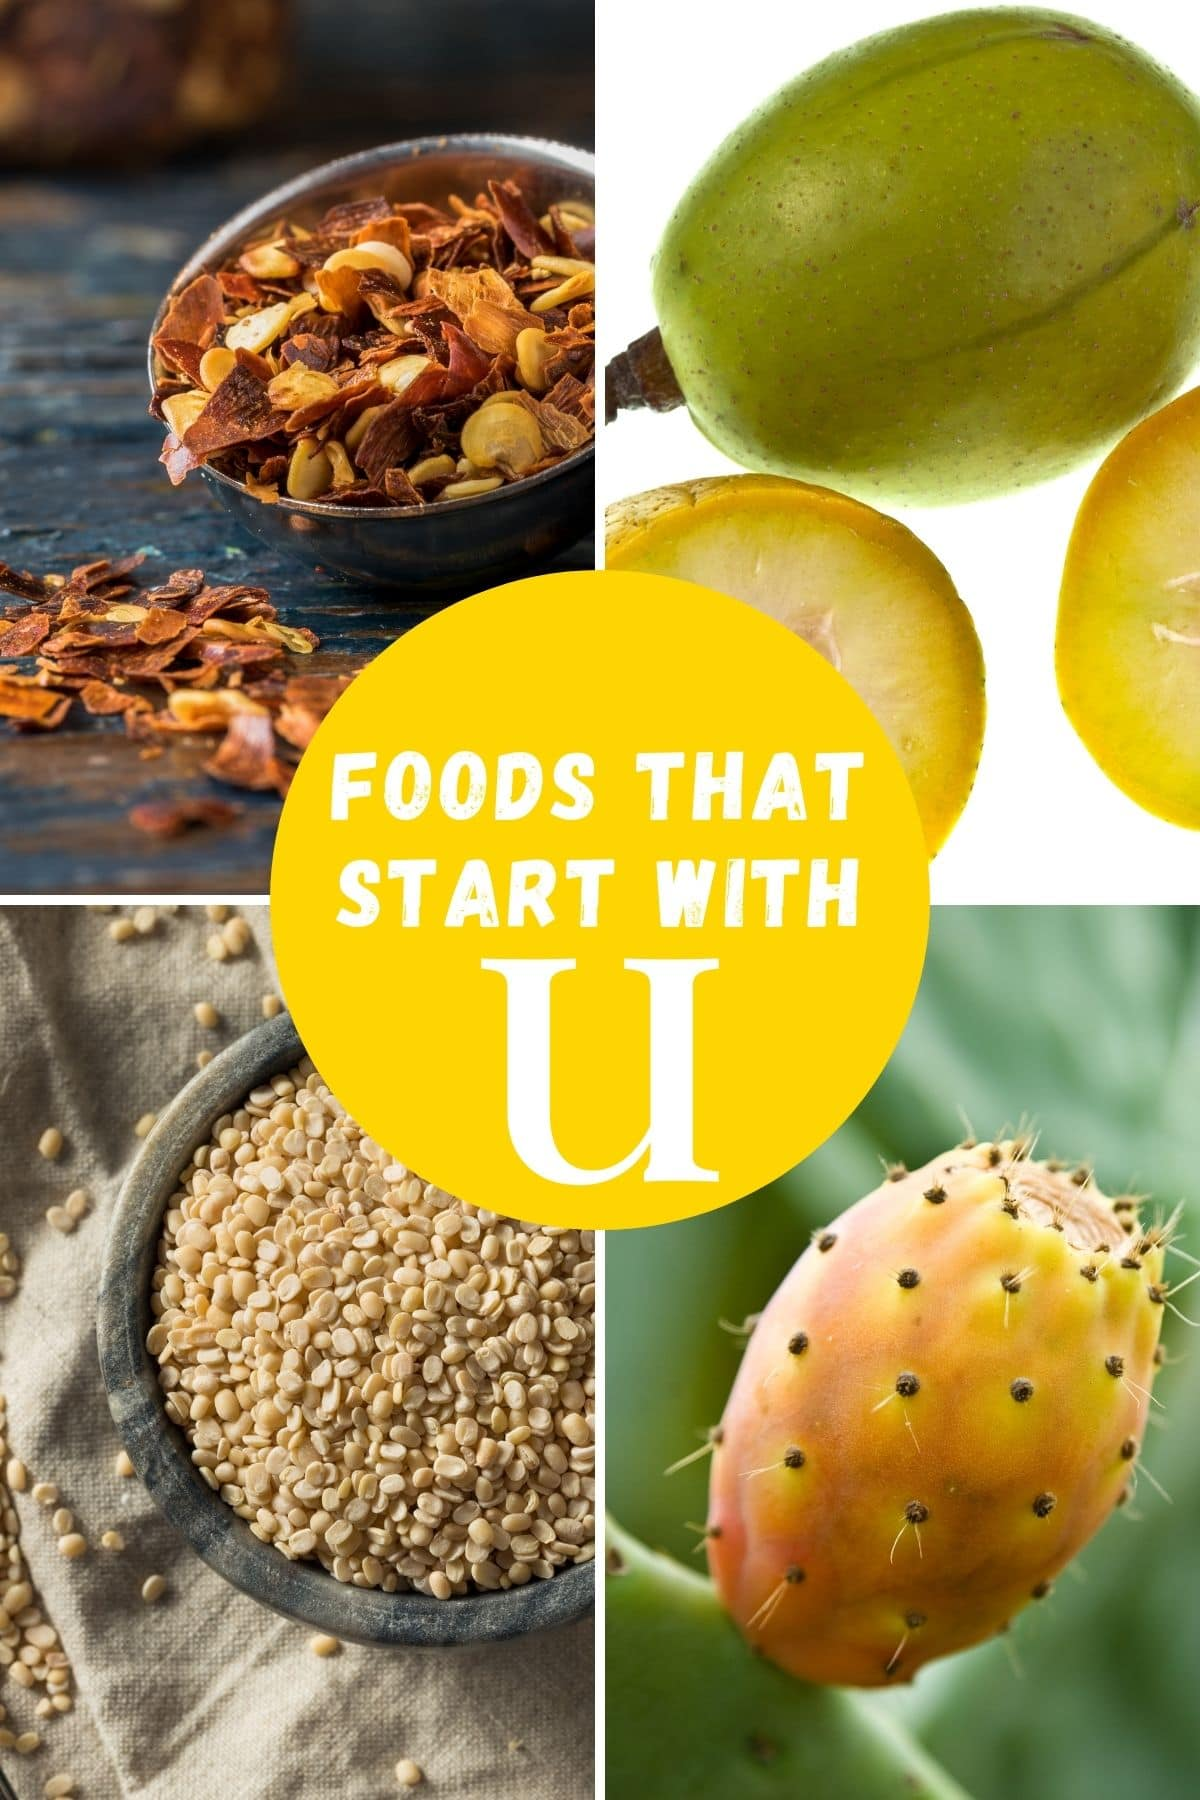 foods beginning with the letter U